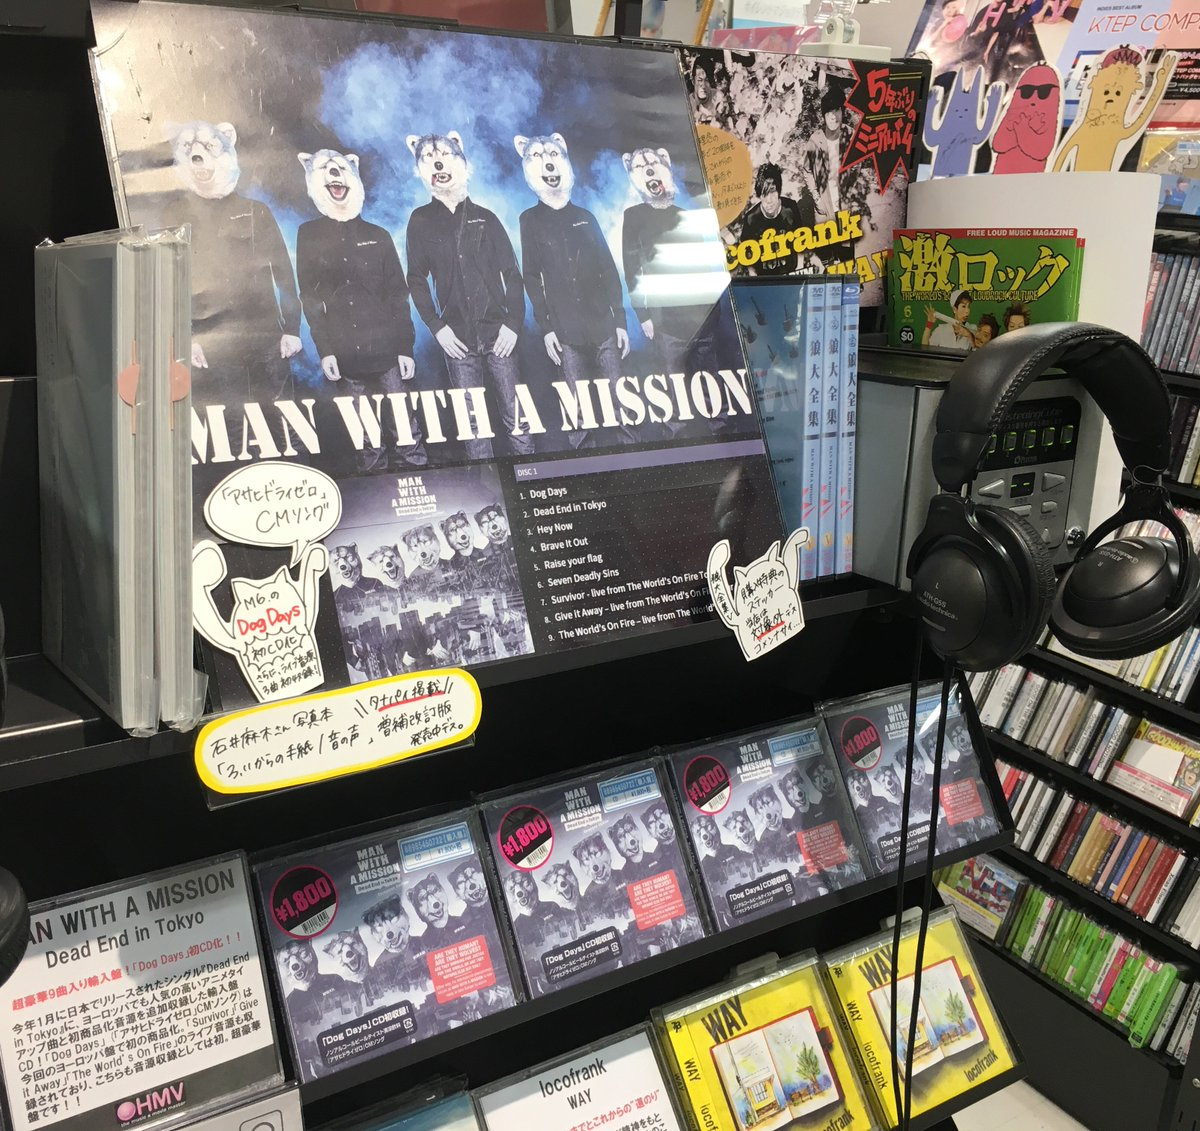 【MAN WITH A MISSION】輸入盤CD『Dead End in TokyoEuropean Edition』